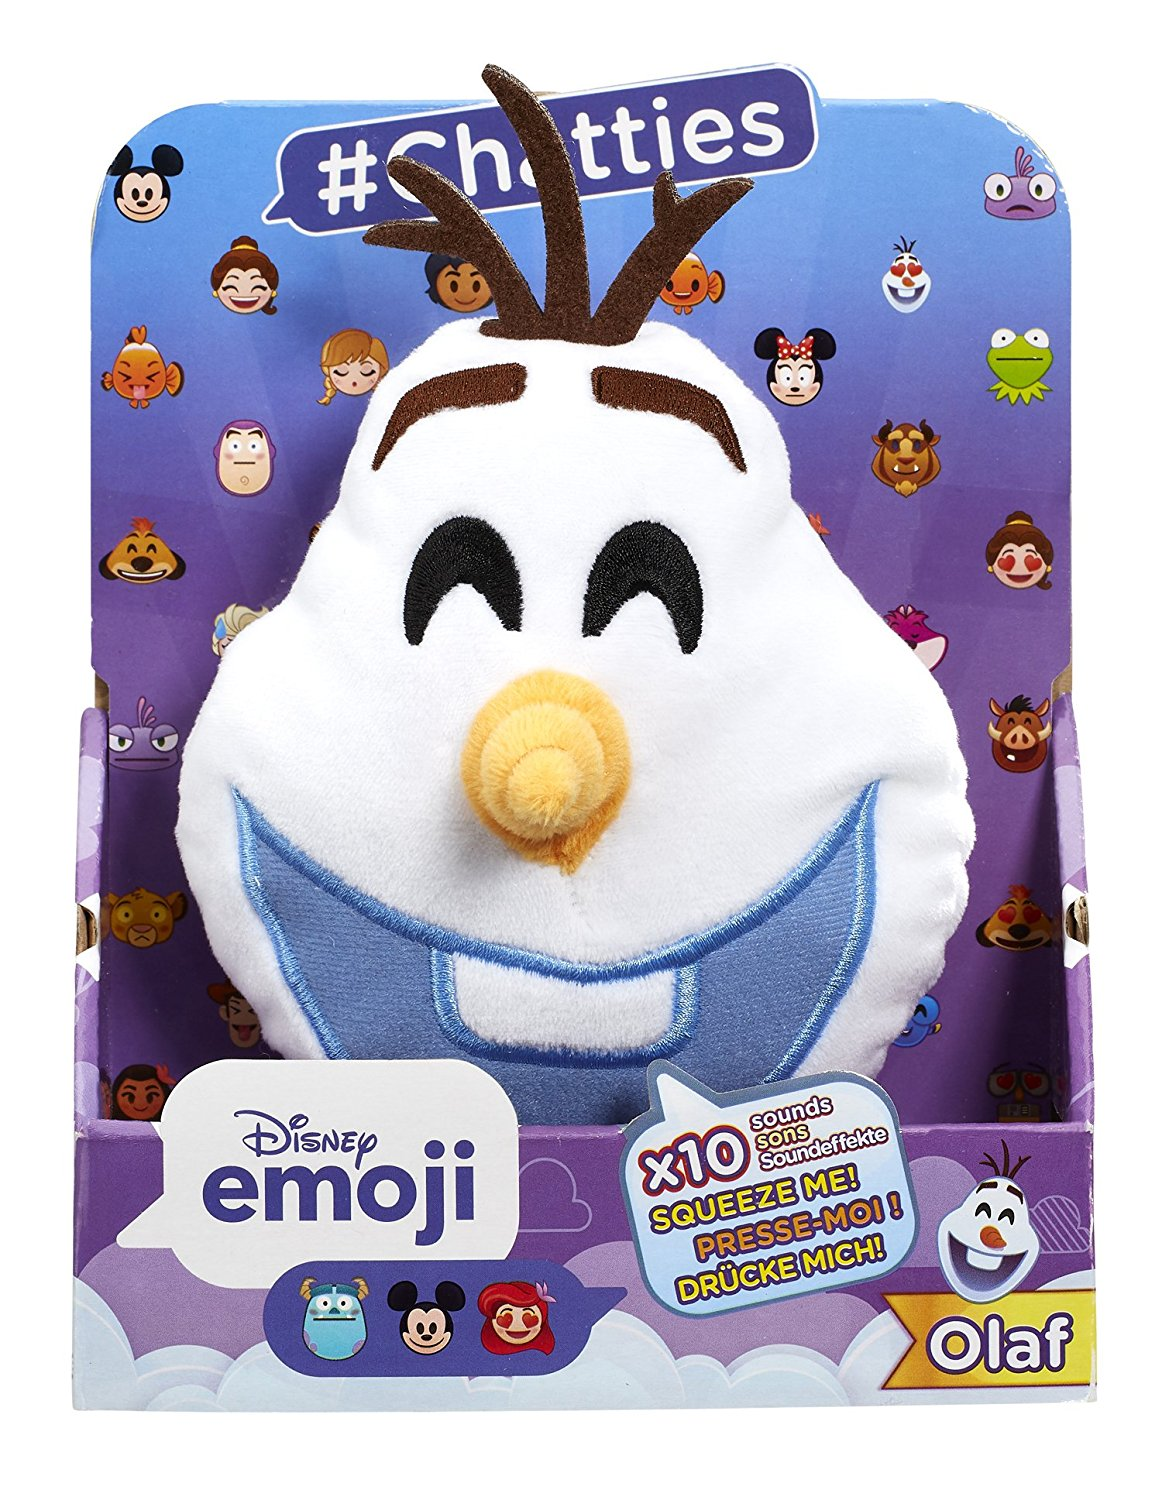 Disney Emoji #Chatties Frozen Olaf Plush With Sound Effects - Click Image to Close